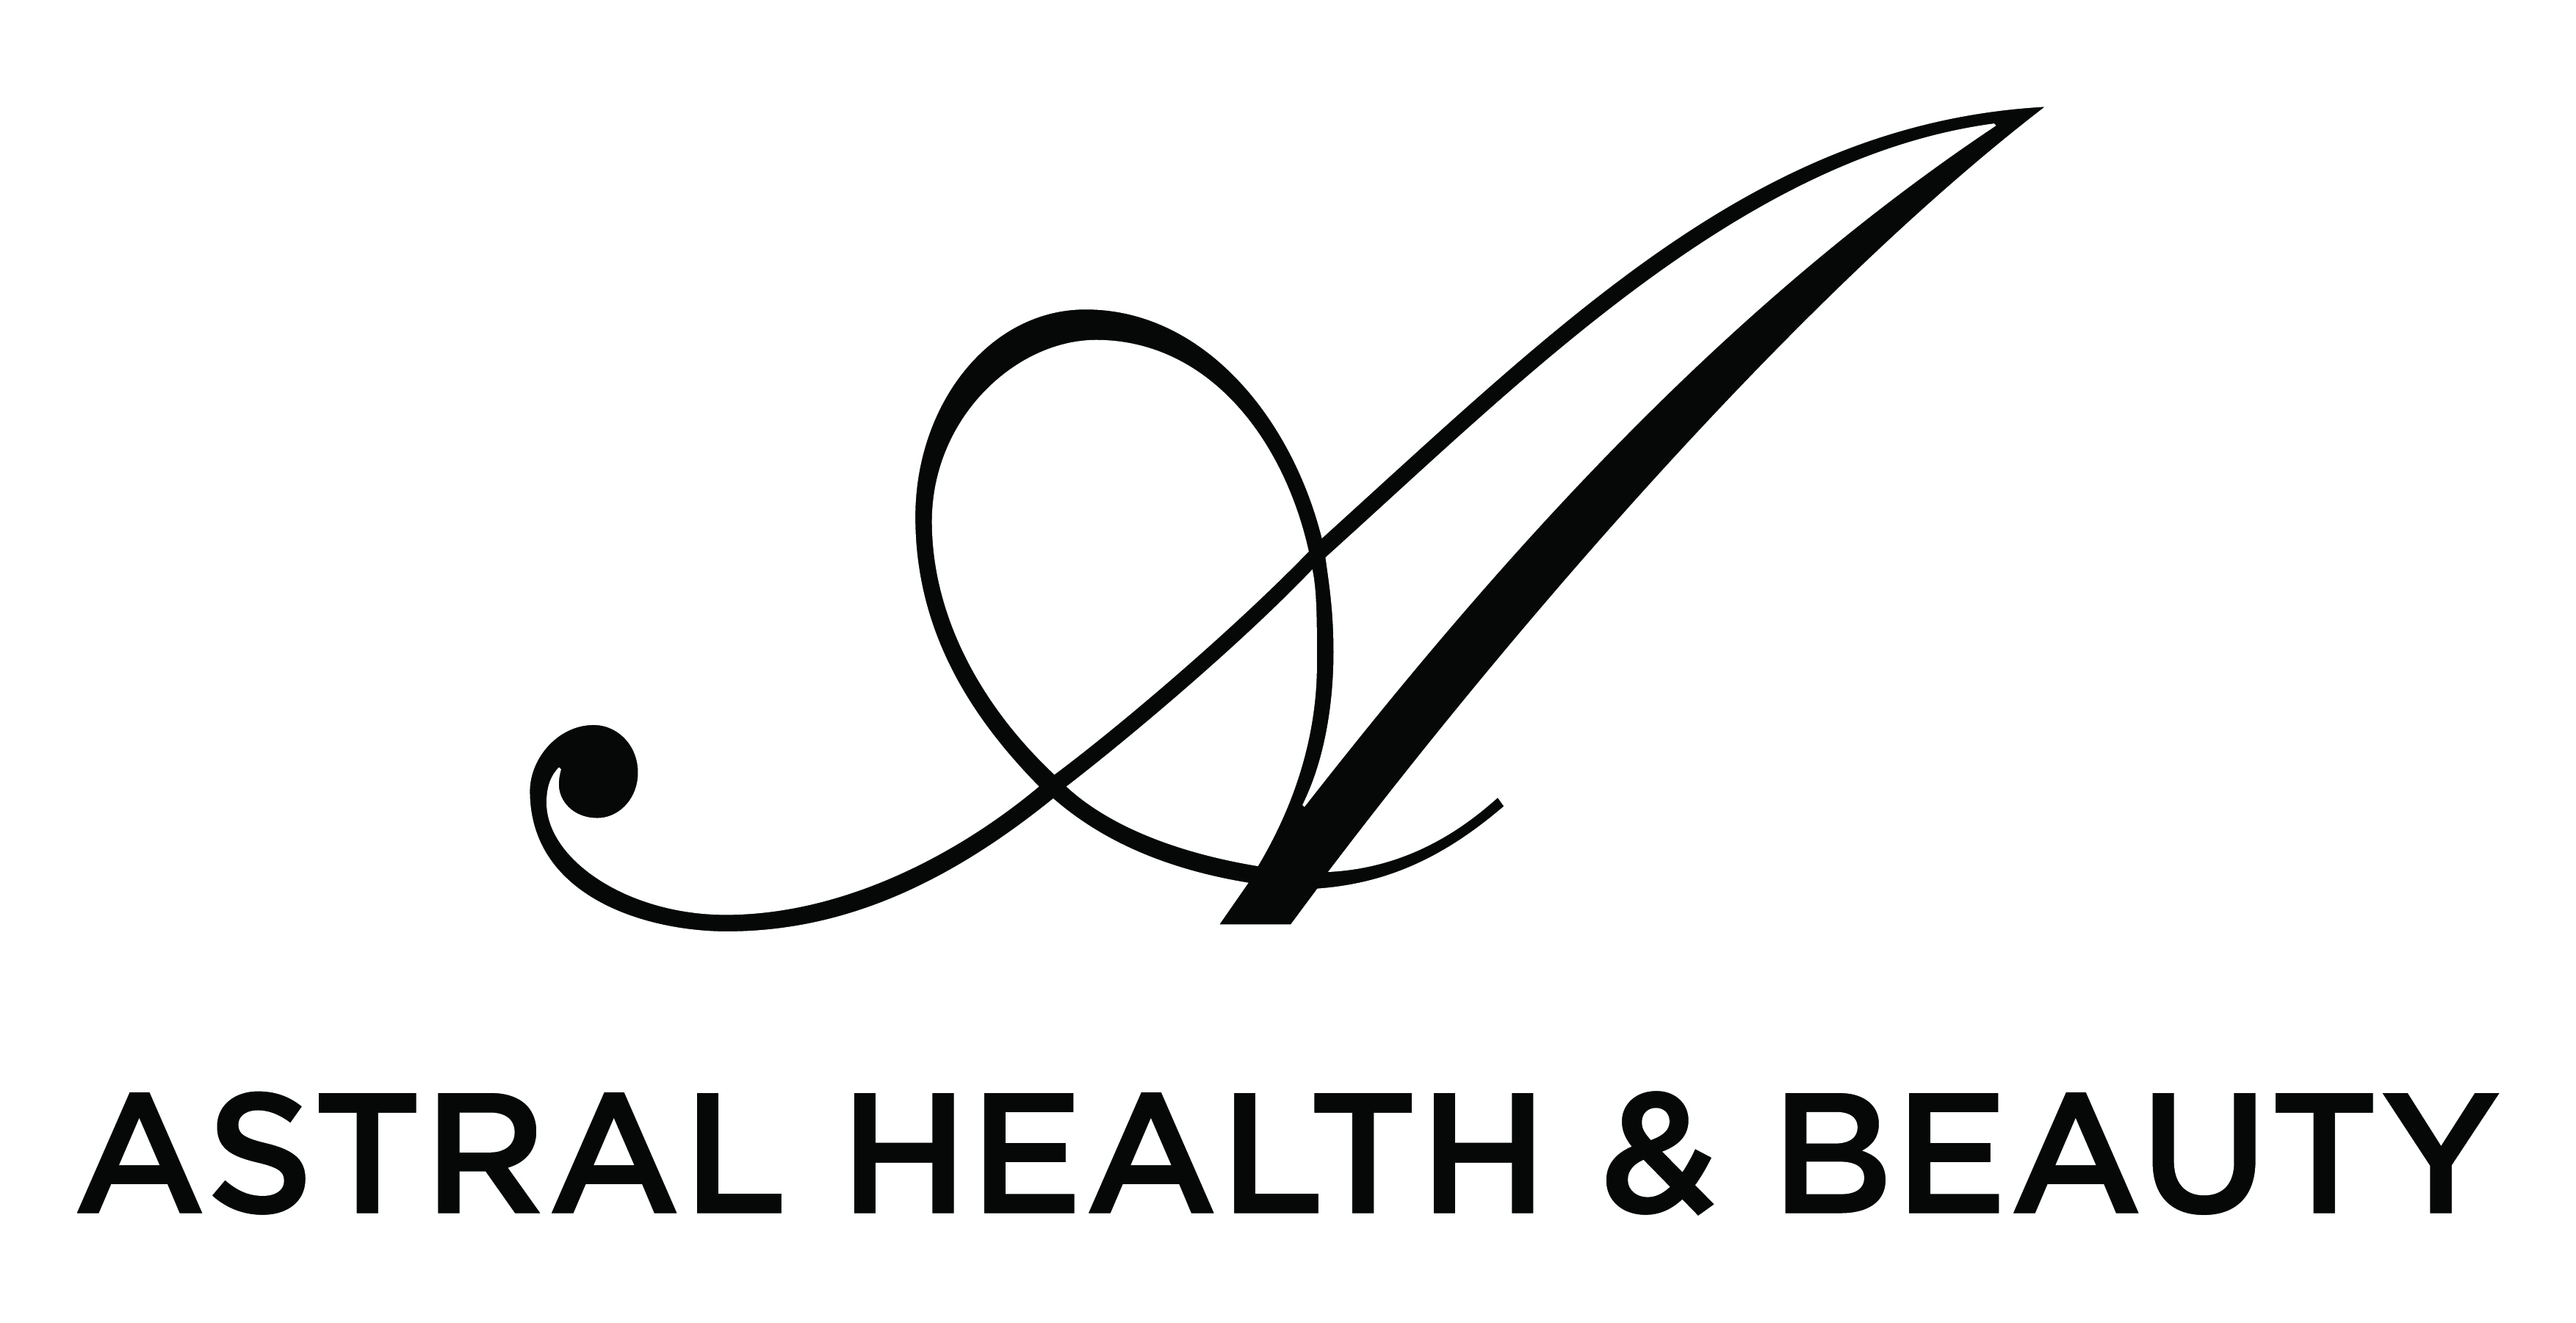 Astral Health & Beauty Named One of Atlanta's Healthiest